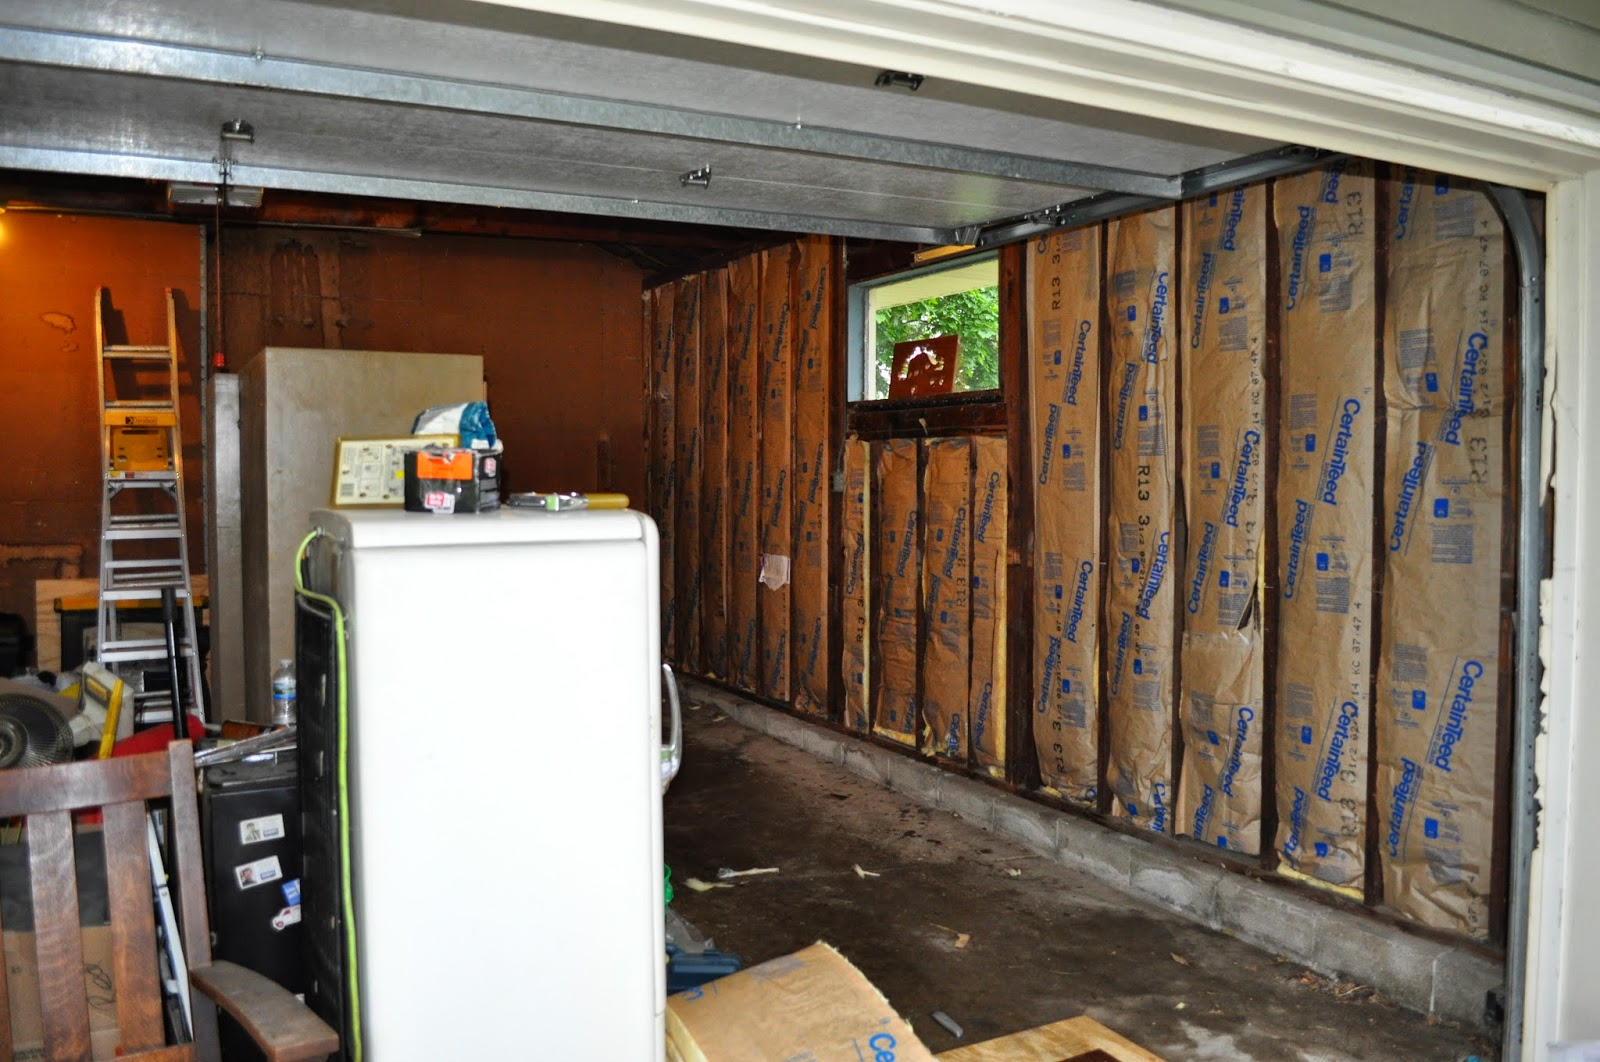 garage, garage organization, organization, flooring, drywall, pirate flag, mudding, insulation, garage project, diy, reno